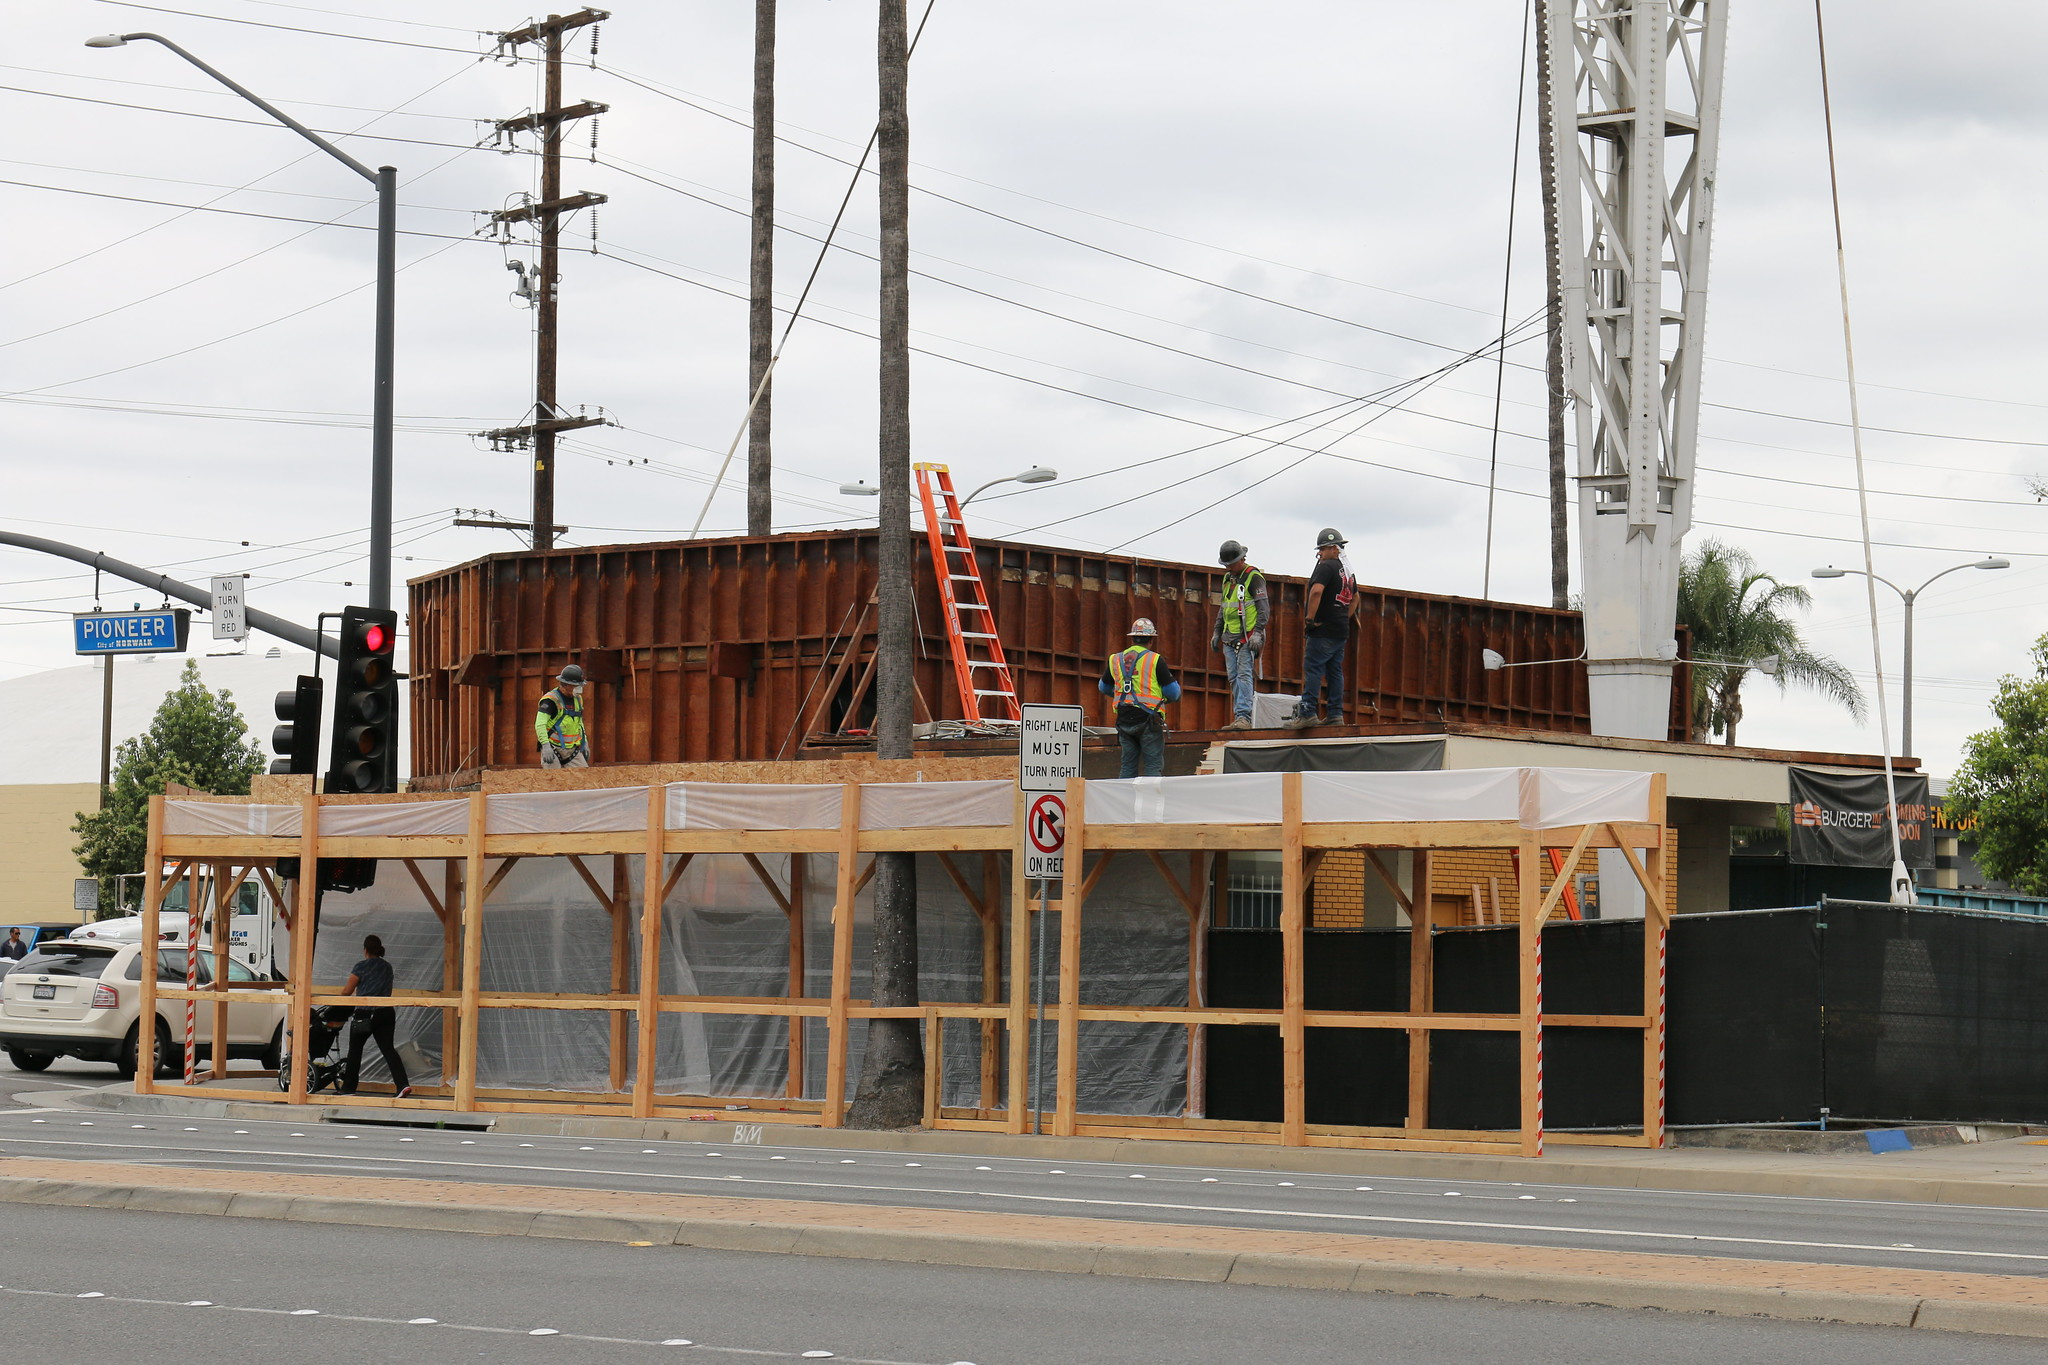 Construction of the new Burger IM restaurant in Norwalk. Photo courtesy City of Norwalk